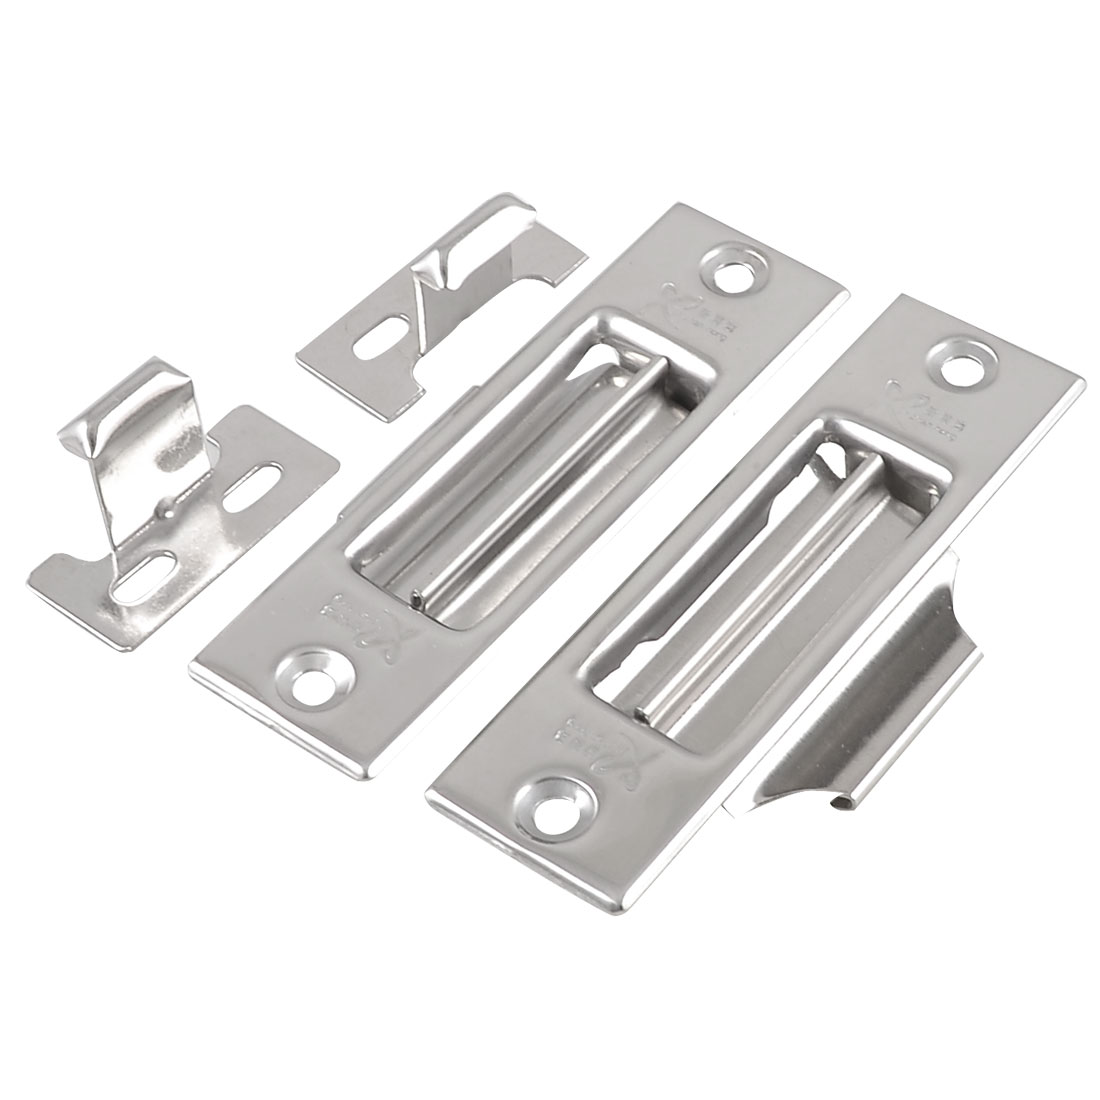 House Hardware Silver Tone Stainless Steel Door Window Latch Lock Barrel Bolt